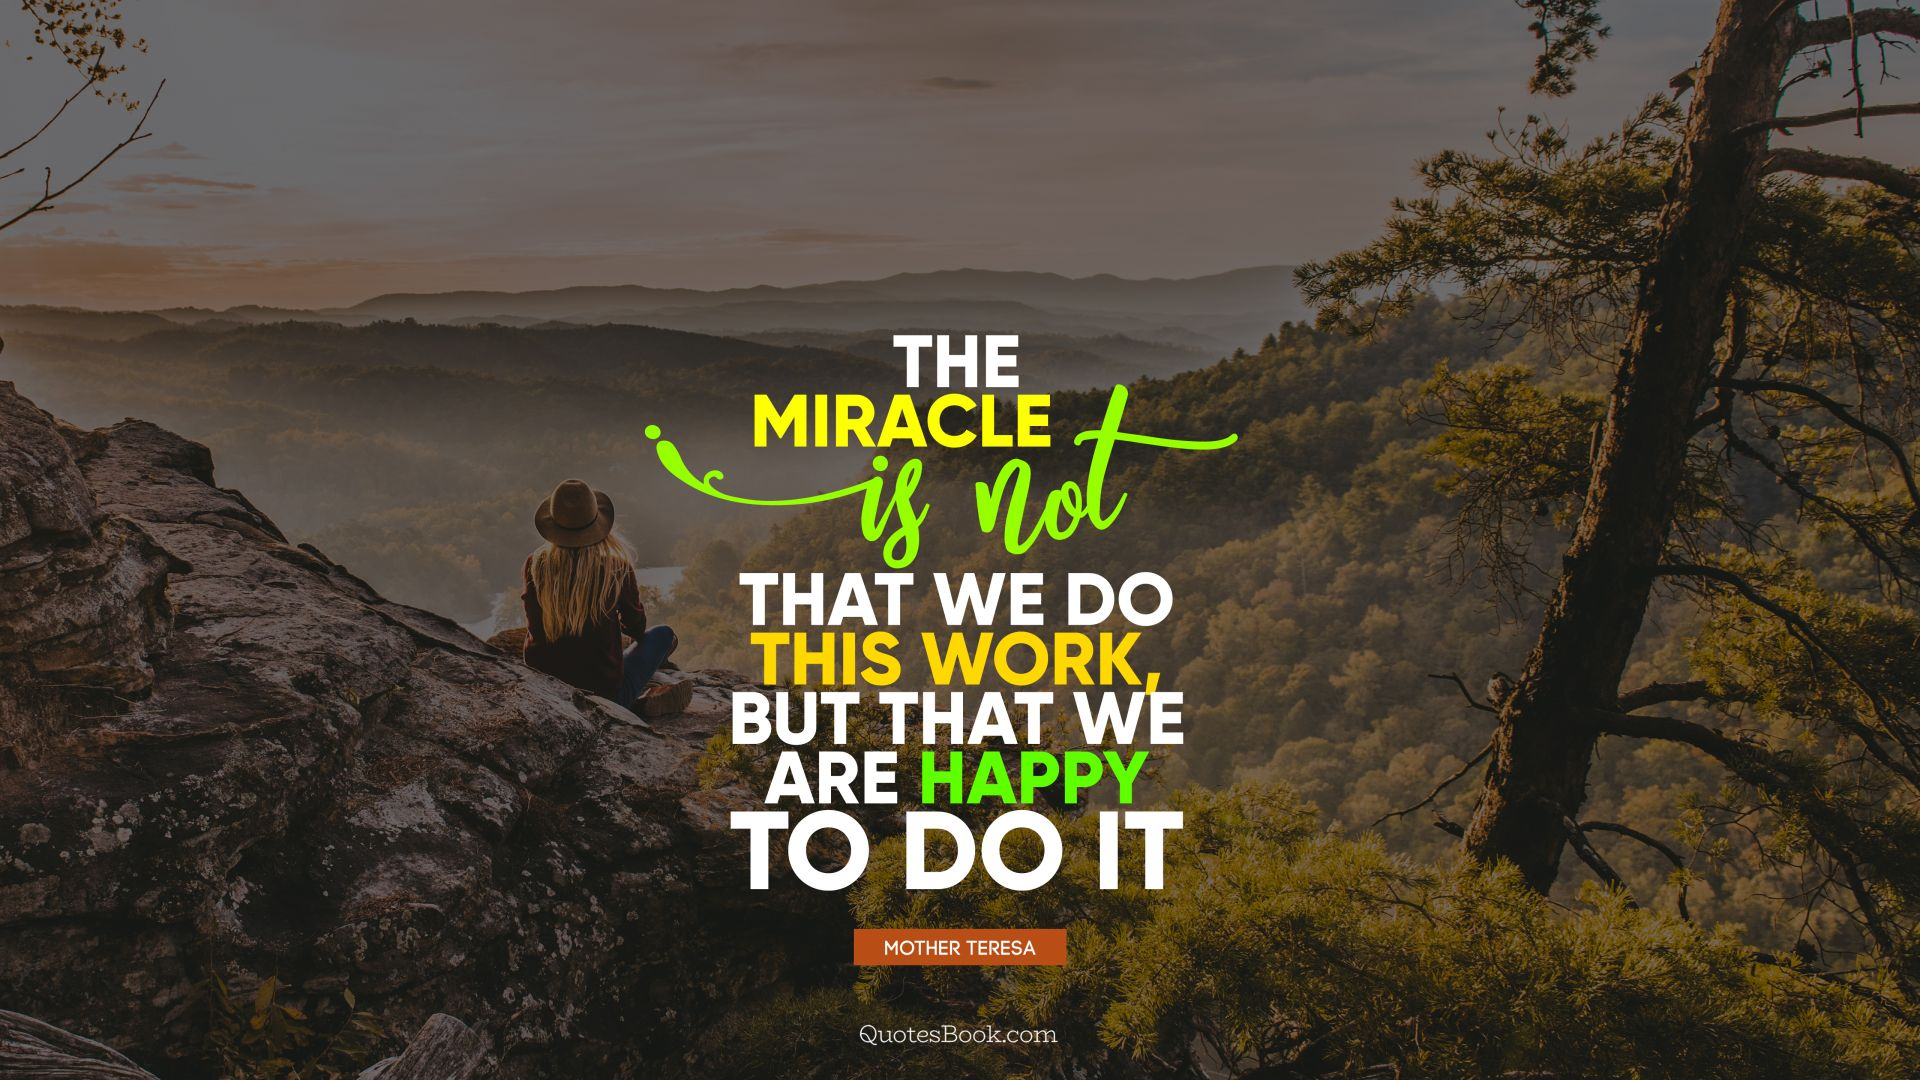 The miracle is not that we do this work, but that we are happy to do it. - Quote by Mother Teresa